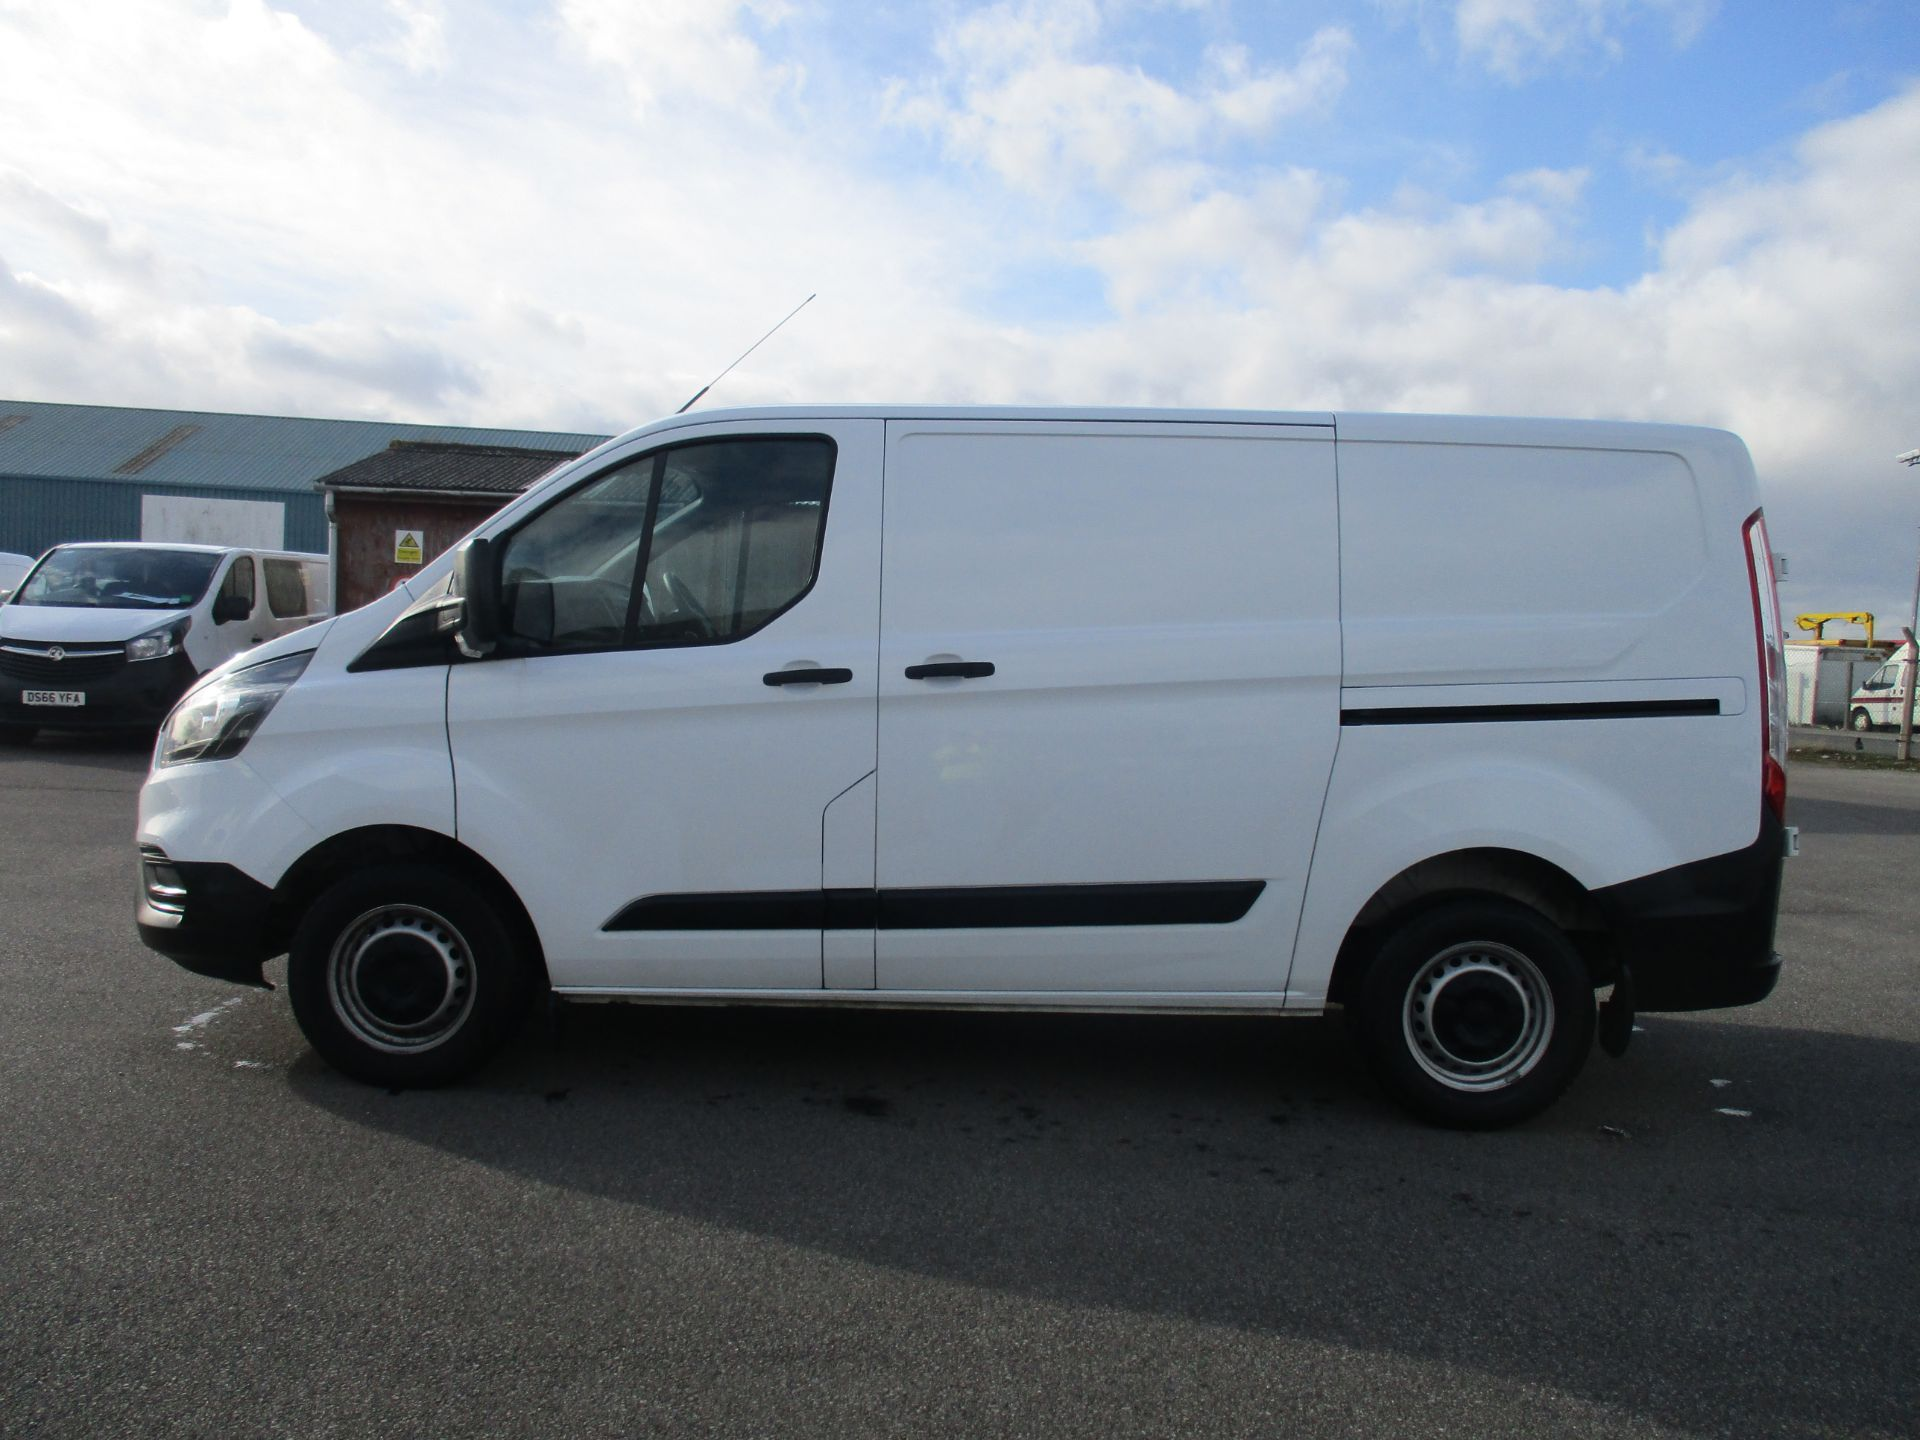 2018 Ford Transit Custom 300 L1 DIESEL FWD 2.0 TDCI 105PS LOW ROOF VAN EURO 6 (BG18OAD) Thumbnail 7